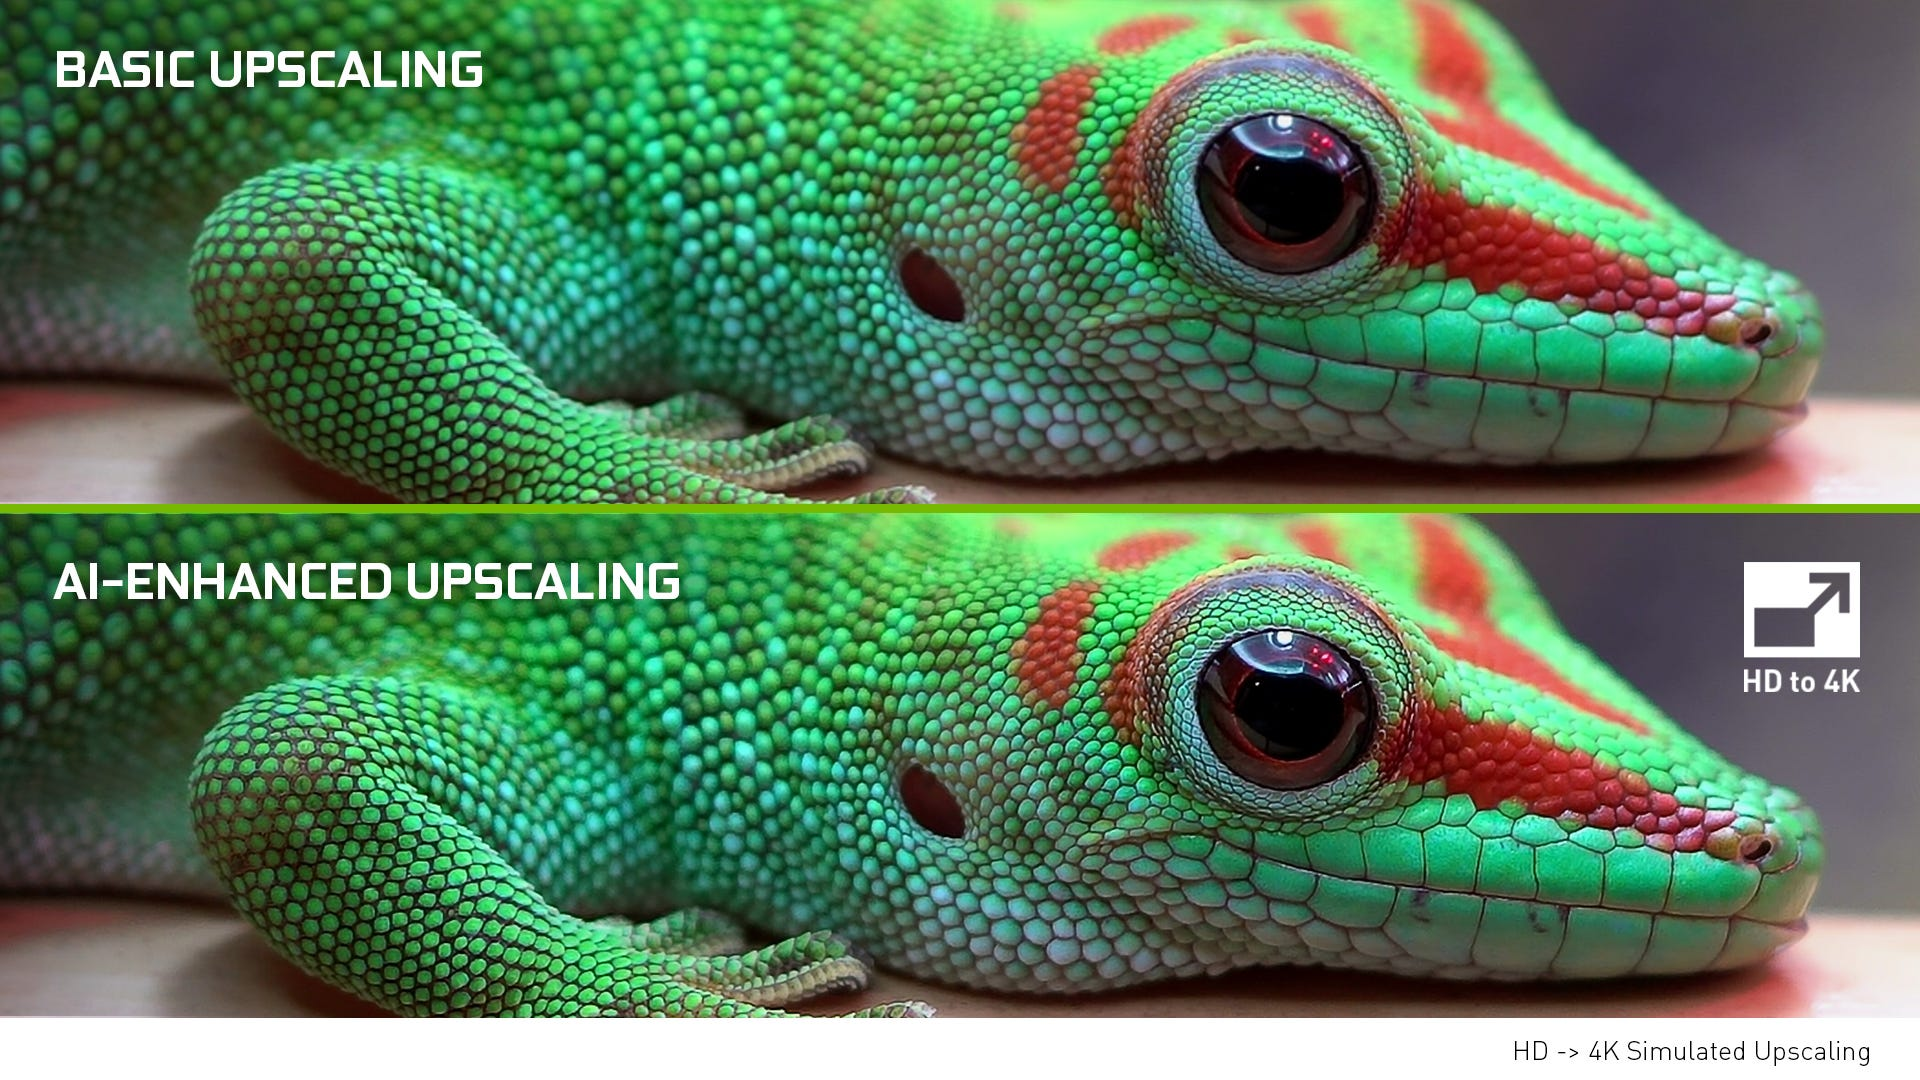 An NVIDIA example of AI 4K upscaling.